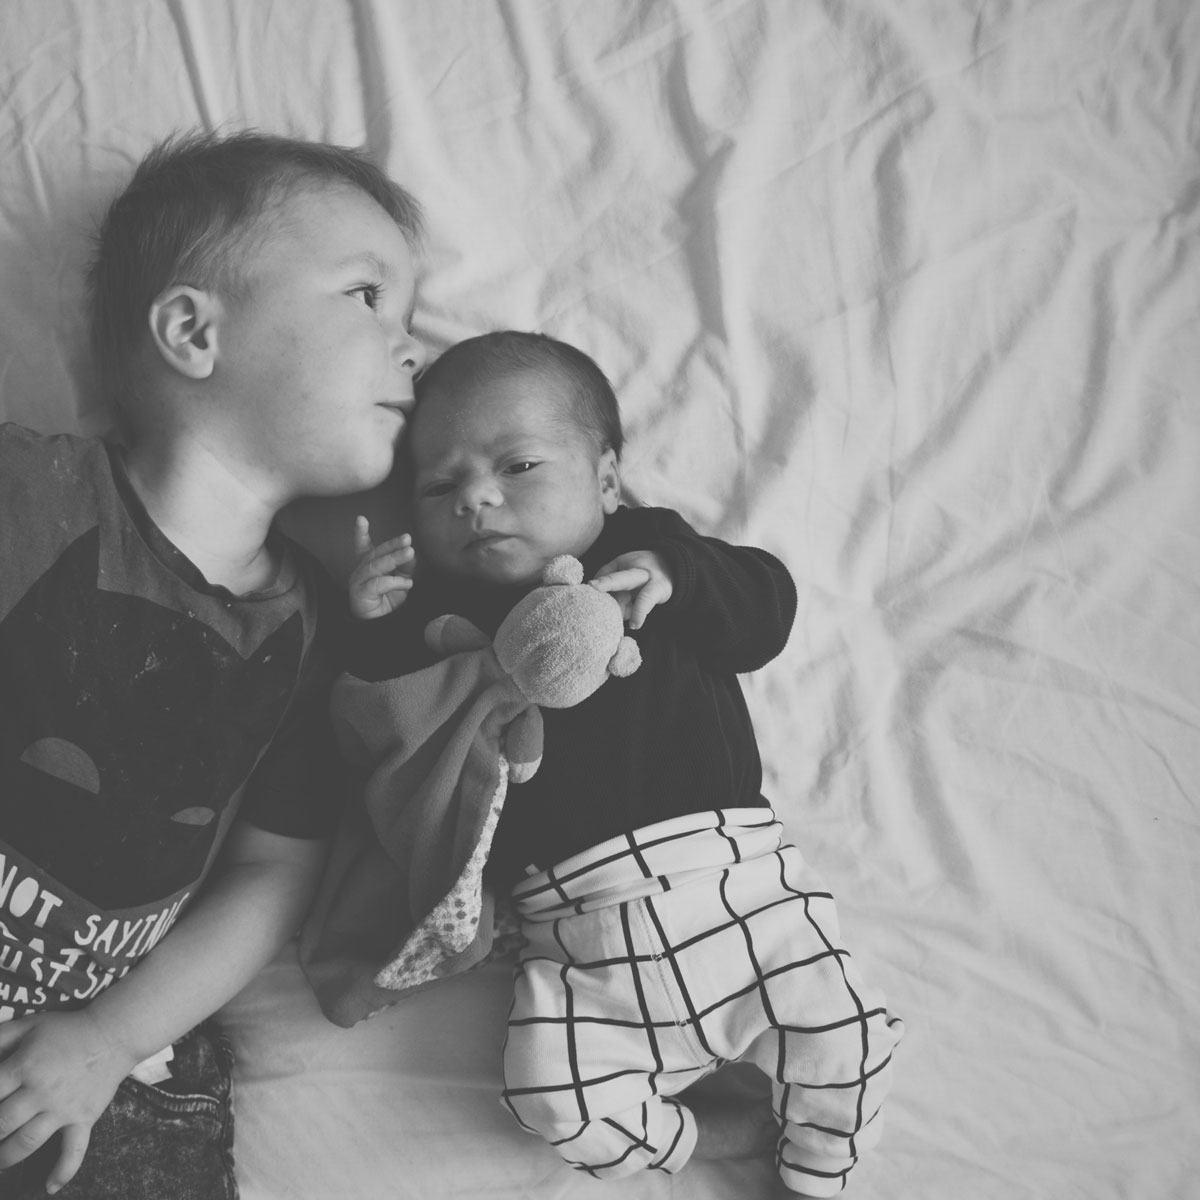 Our month in insta-snaps; September 2016 - Toddler boy and his newborn baby brother cuddling